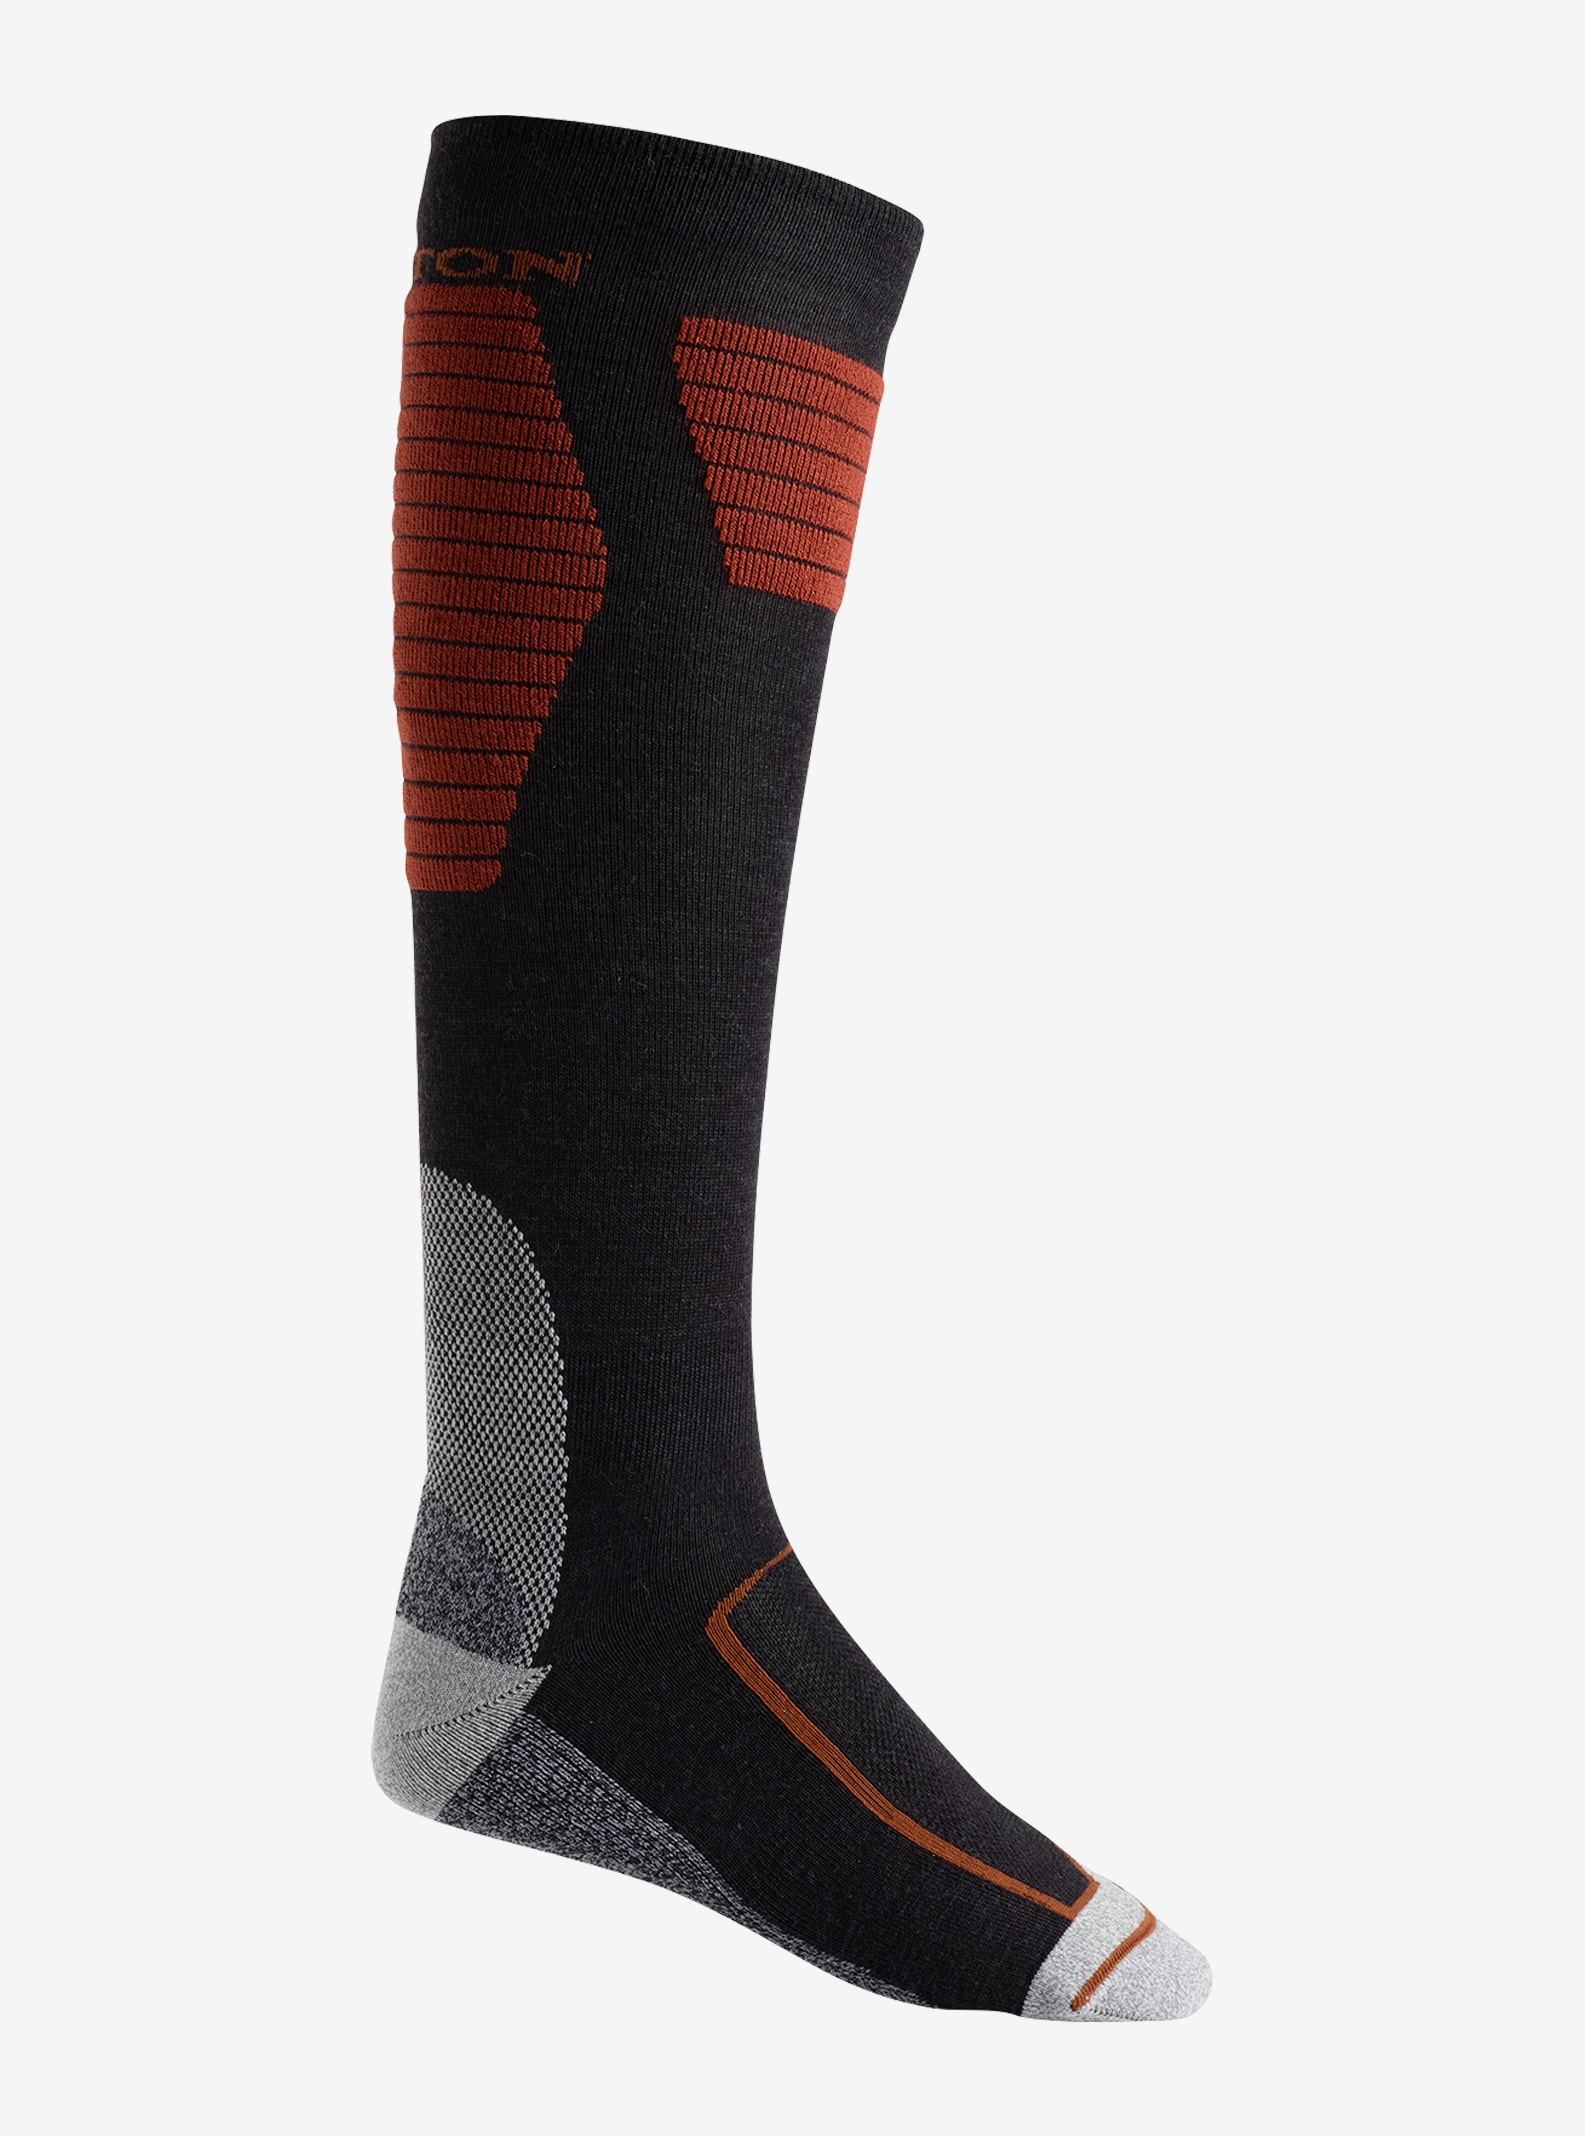 Men's Burton Ultralight Wool Sock shown in Faded Heather